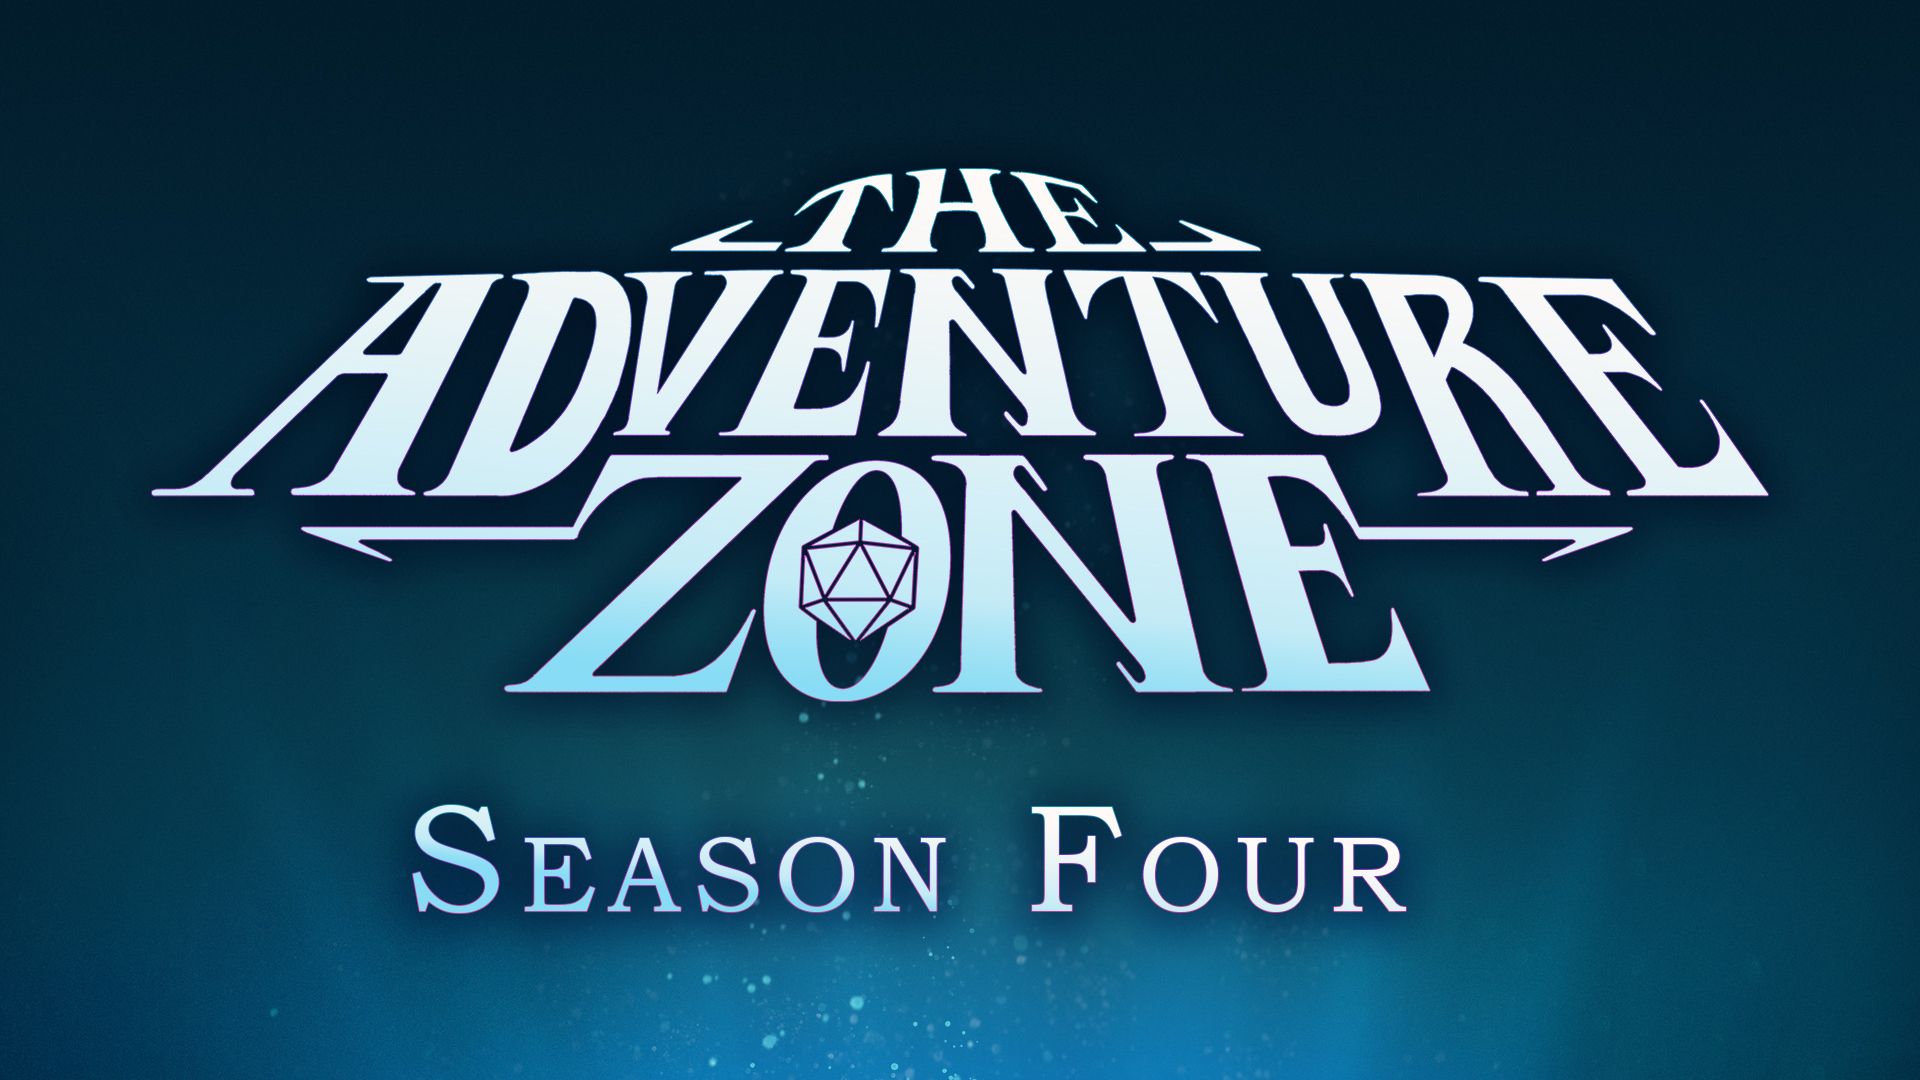 """The Adventure Zone logo is shown outlined in purple. The words """"Season four"""" are below it, also outlined in purple. Everything is set on an underwater background, with a light shining up from below."""